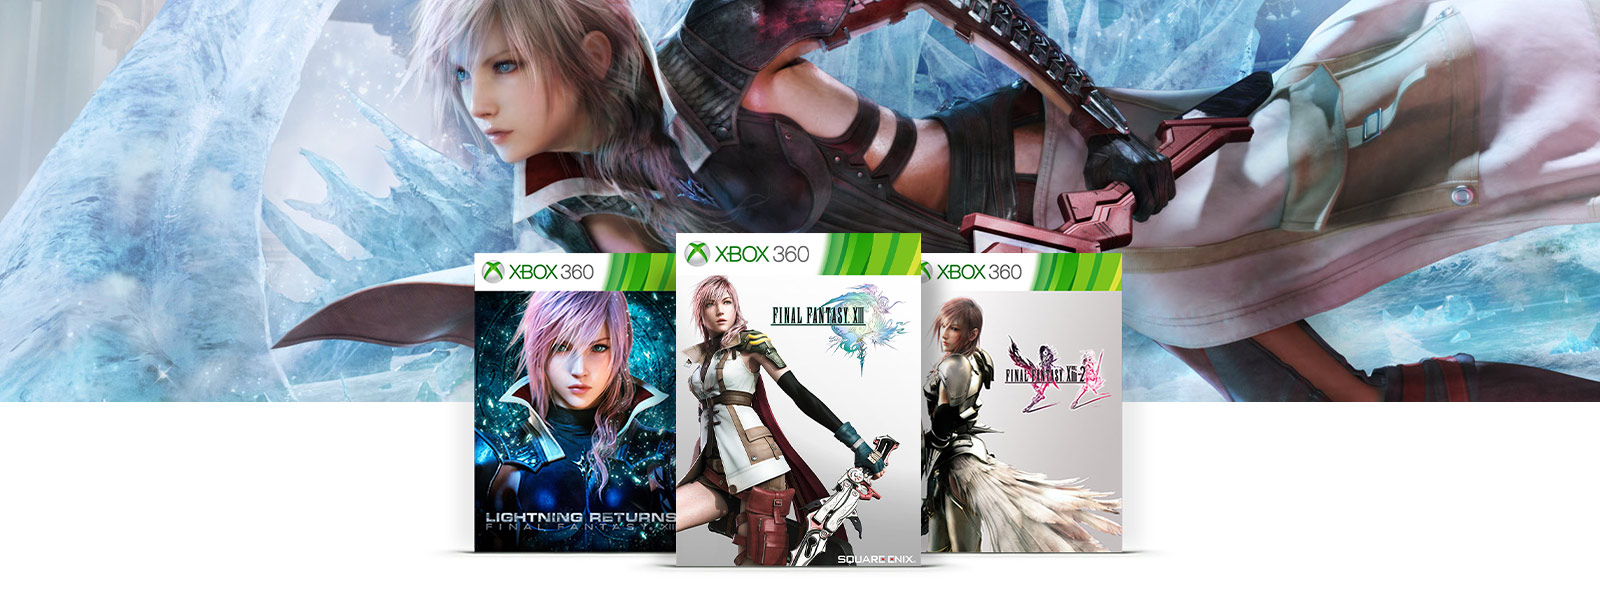 Lightning karakteri üzerinde görünen FINAL FANTASY XIII, FINAL FANTASY XIII-2 ve LIGHTNING RETURNS FINAL FANTASY için kutu tasarım görselleri